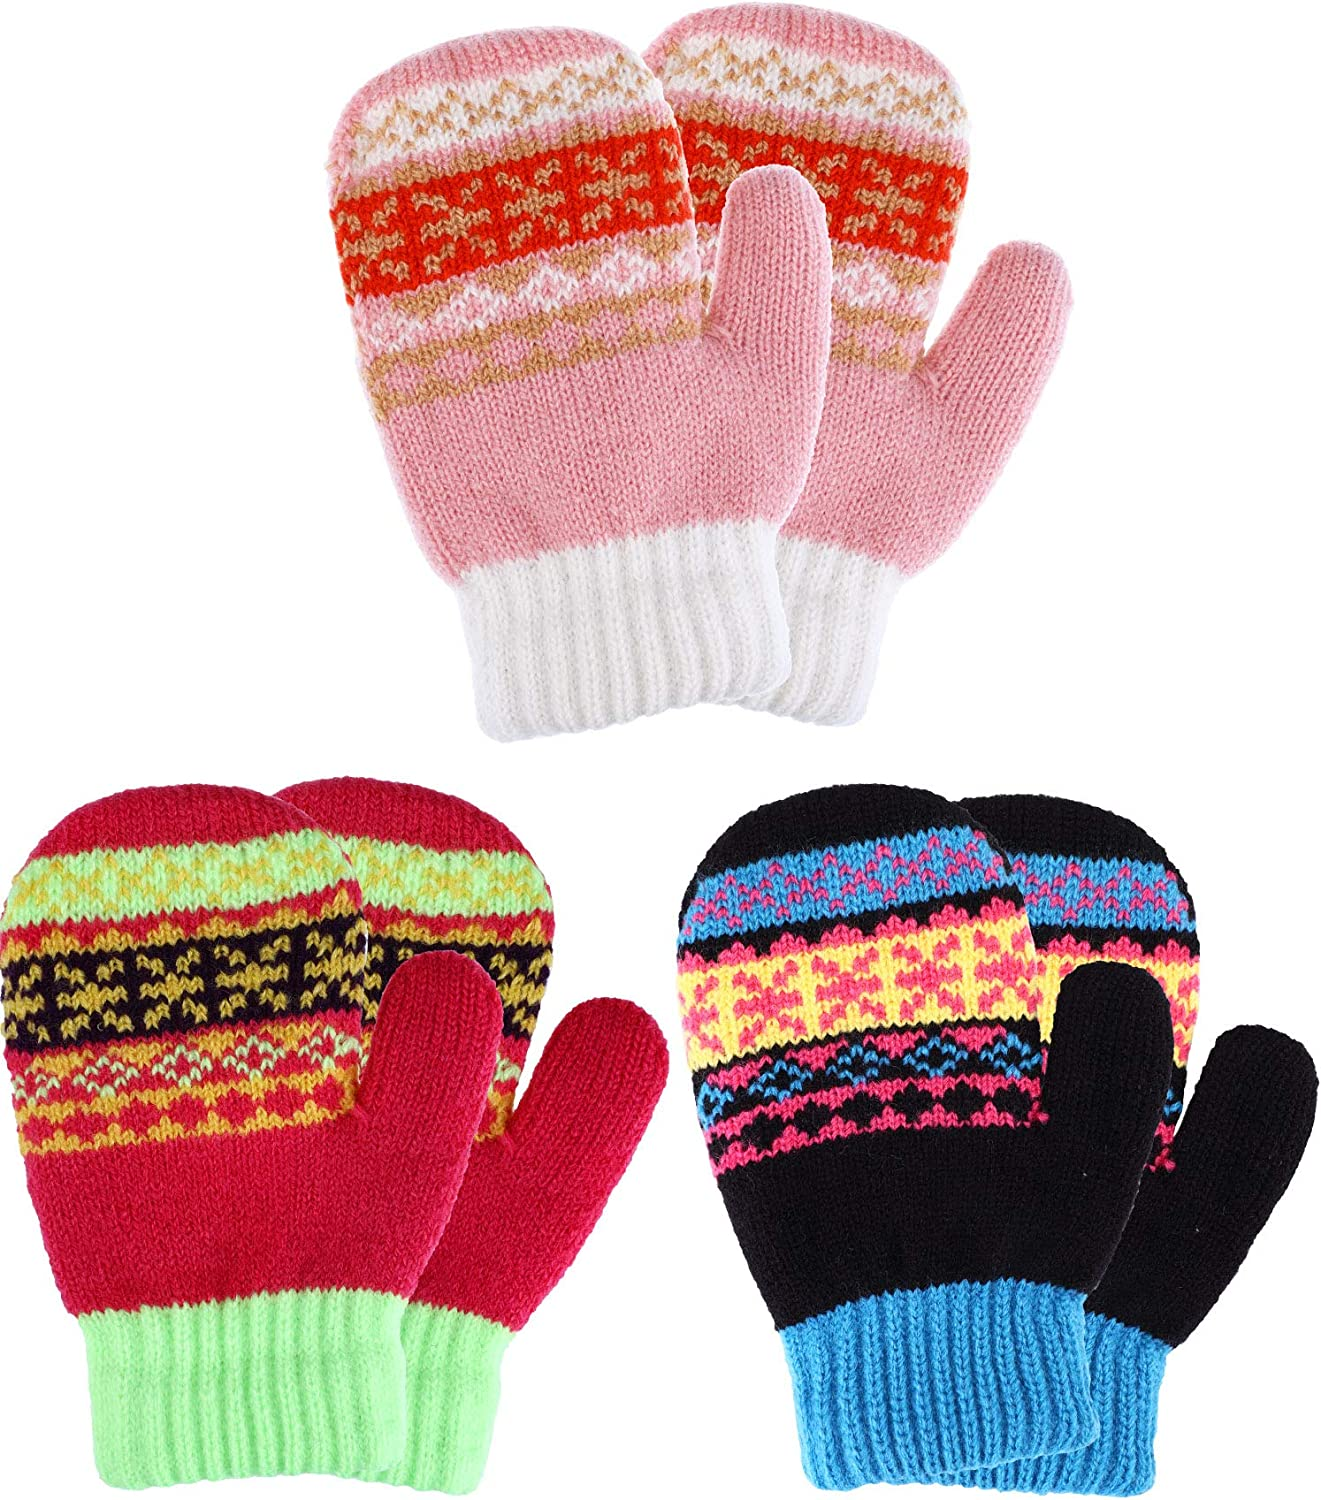 Tatuo 3 Pairs Full Finger Kids Gloves Winter Warm Knitted Mittens Plush Thicken Christmas Gloves for Infant Boys Girls Color Set 4